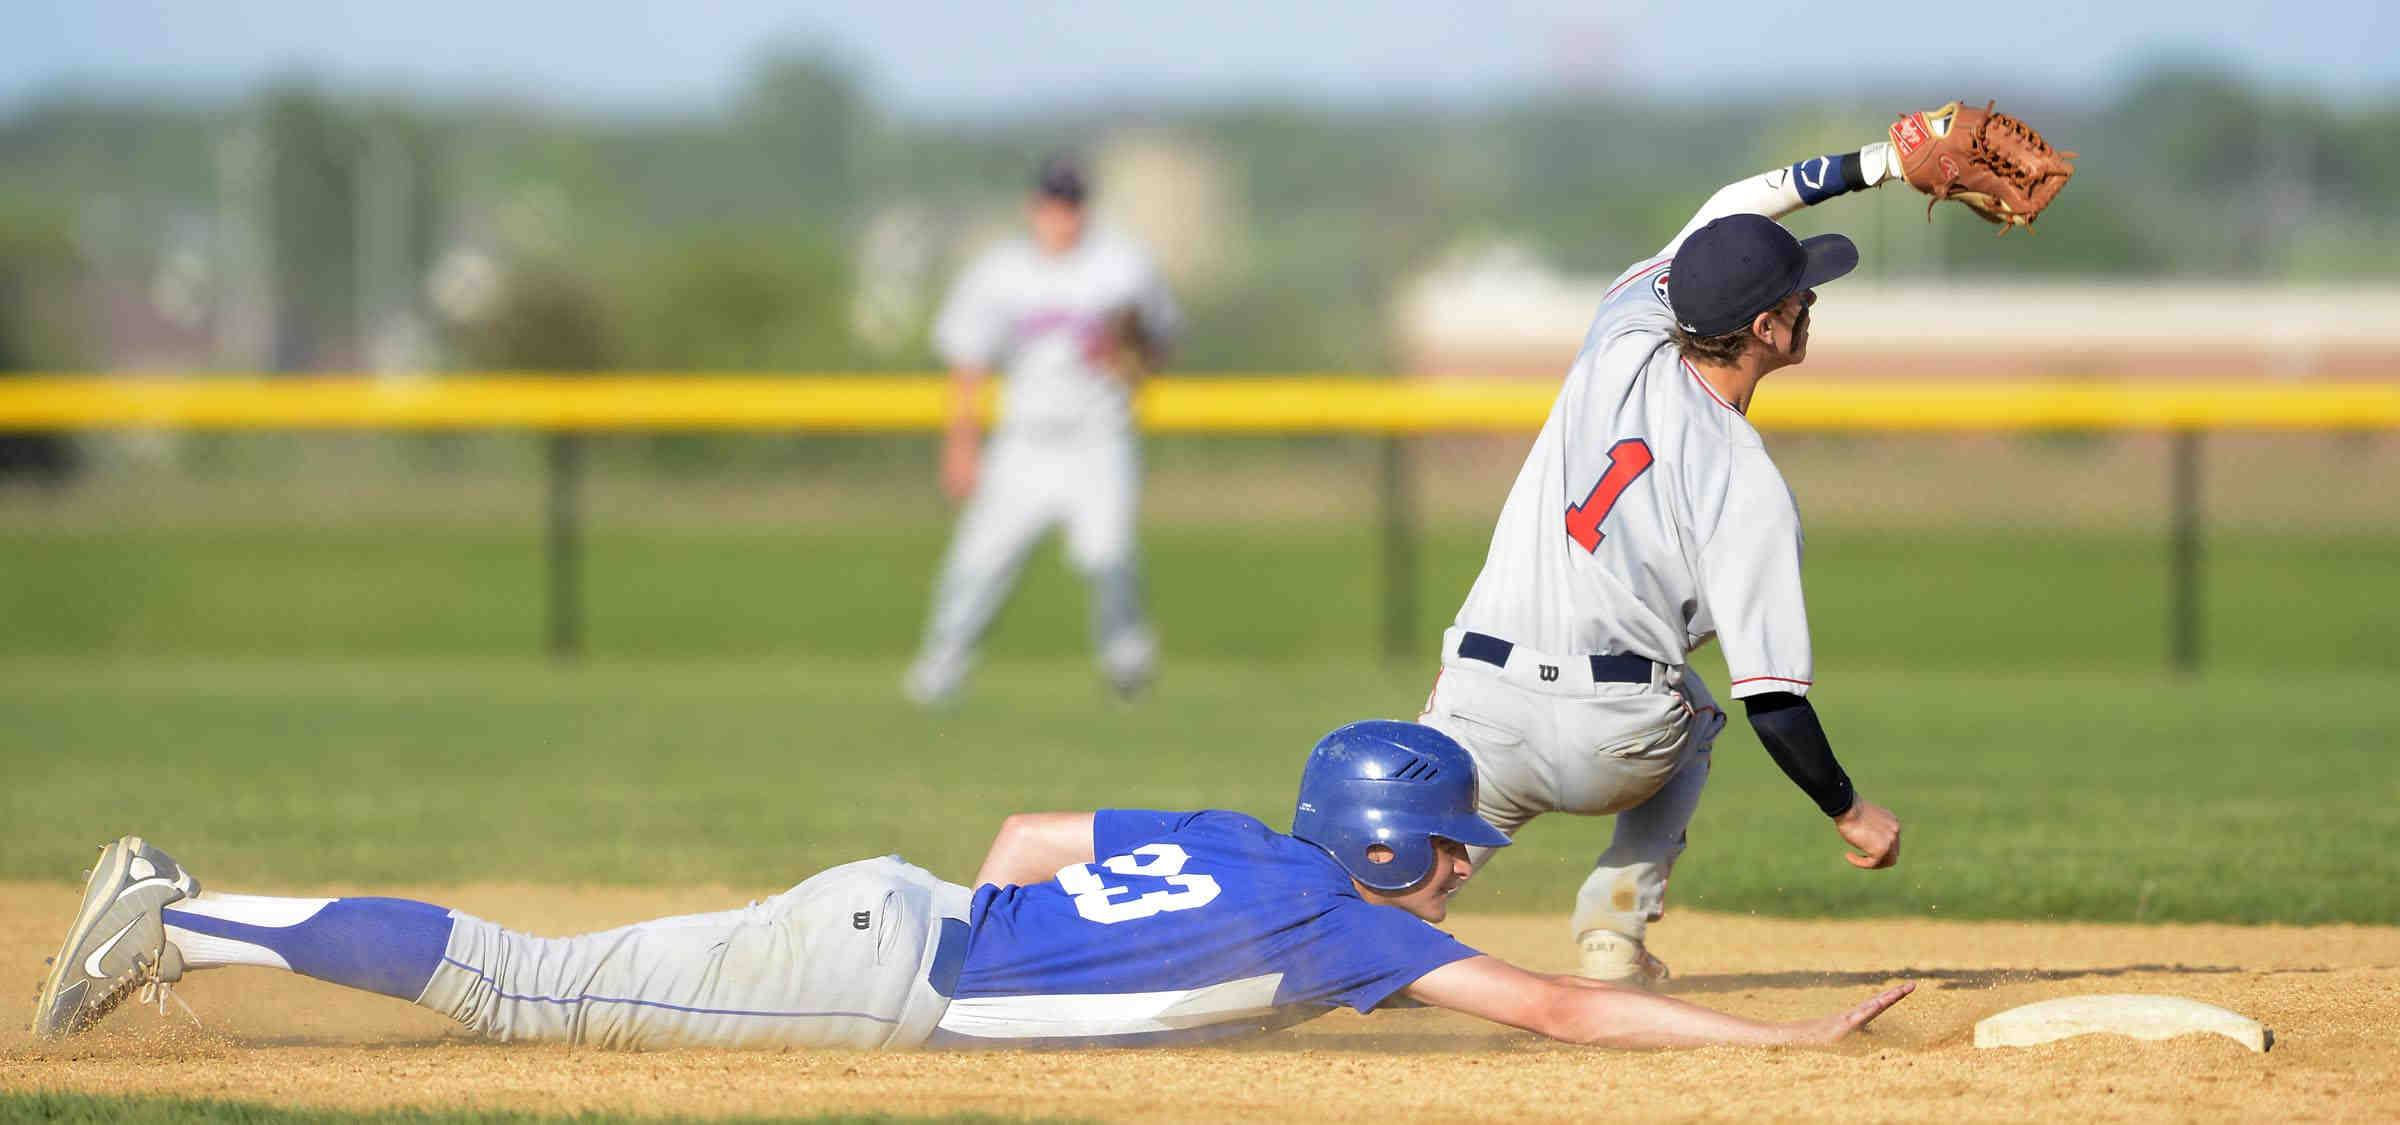 Marmion's Alex Troop, pictured last year sliding back into second base, leads Marmion this year with 19 RBI, and he's been dominating on the mound with a 4-0 record, 0.167 ERA and 84 strikeouts in just 42 innings.